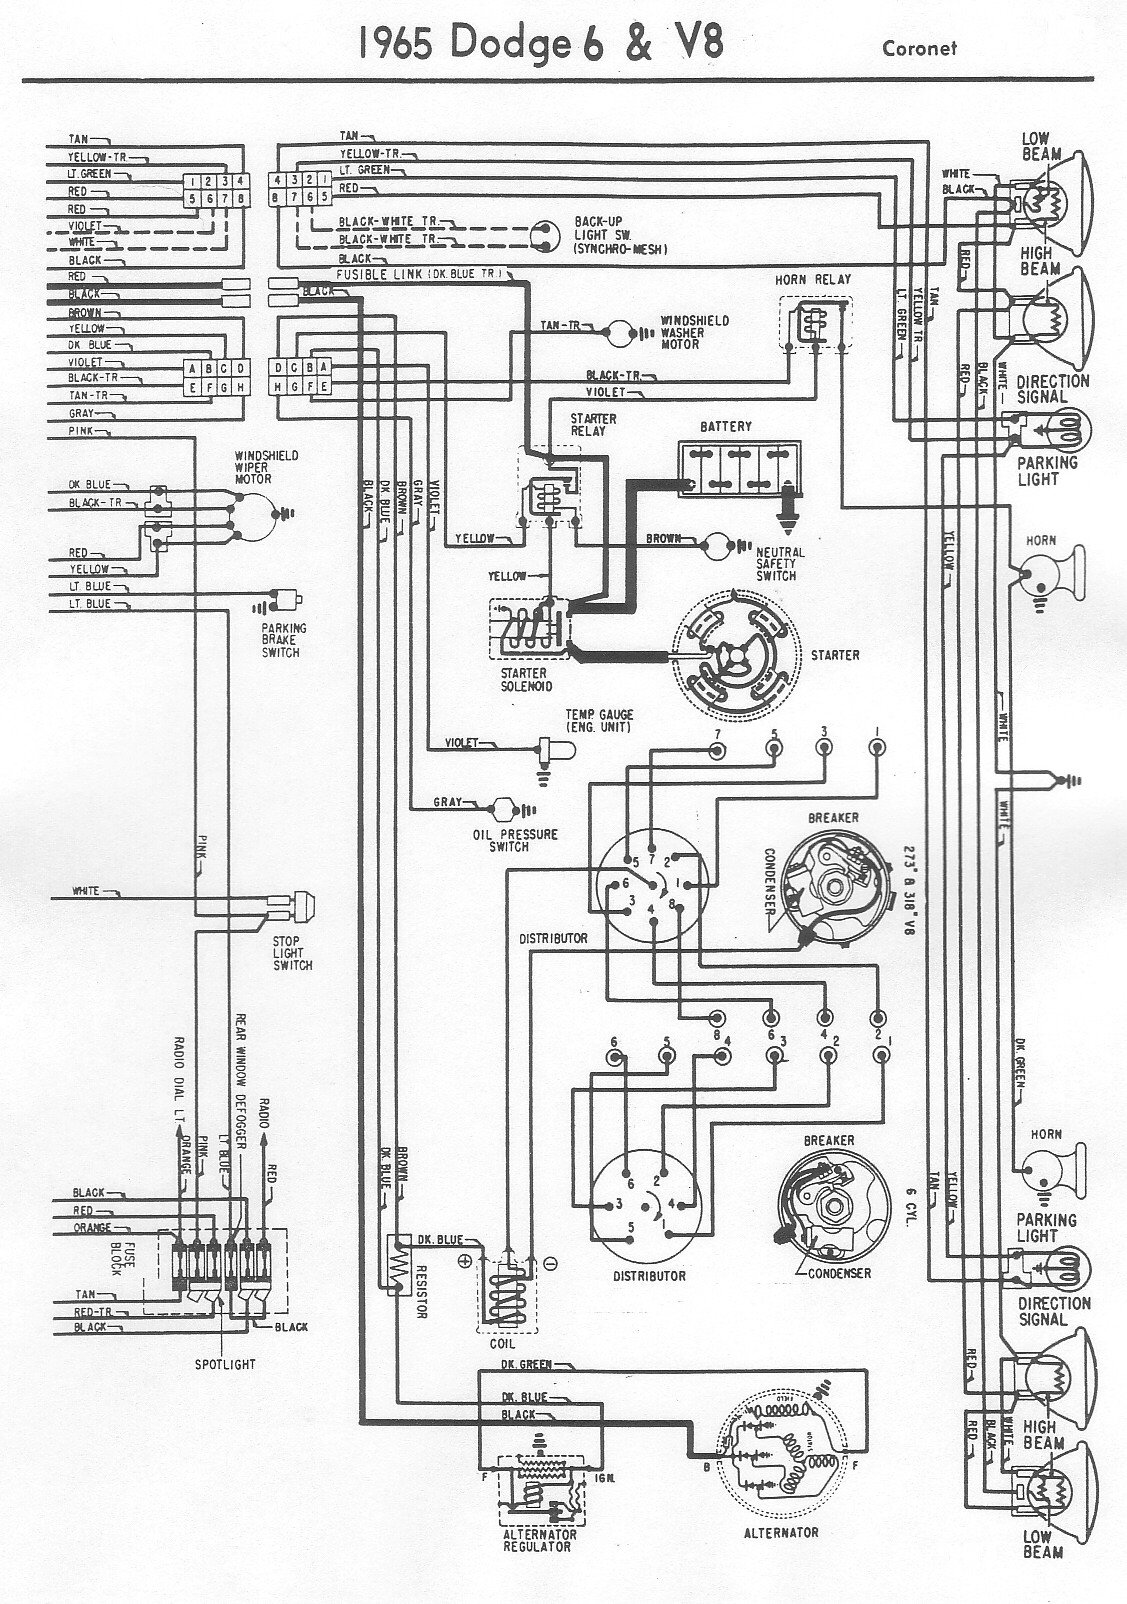 medium resolution of 70 dart wiring diagram wiring diagram blogs dodge challenger wiring diagram 69 dart wiring diagram